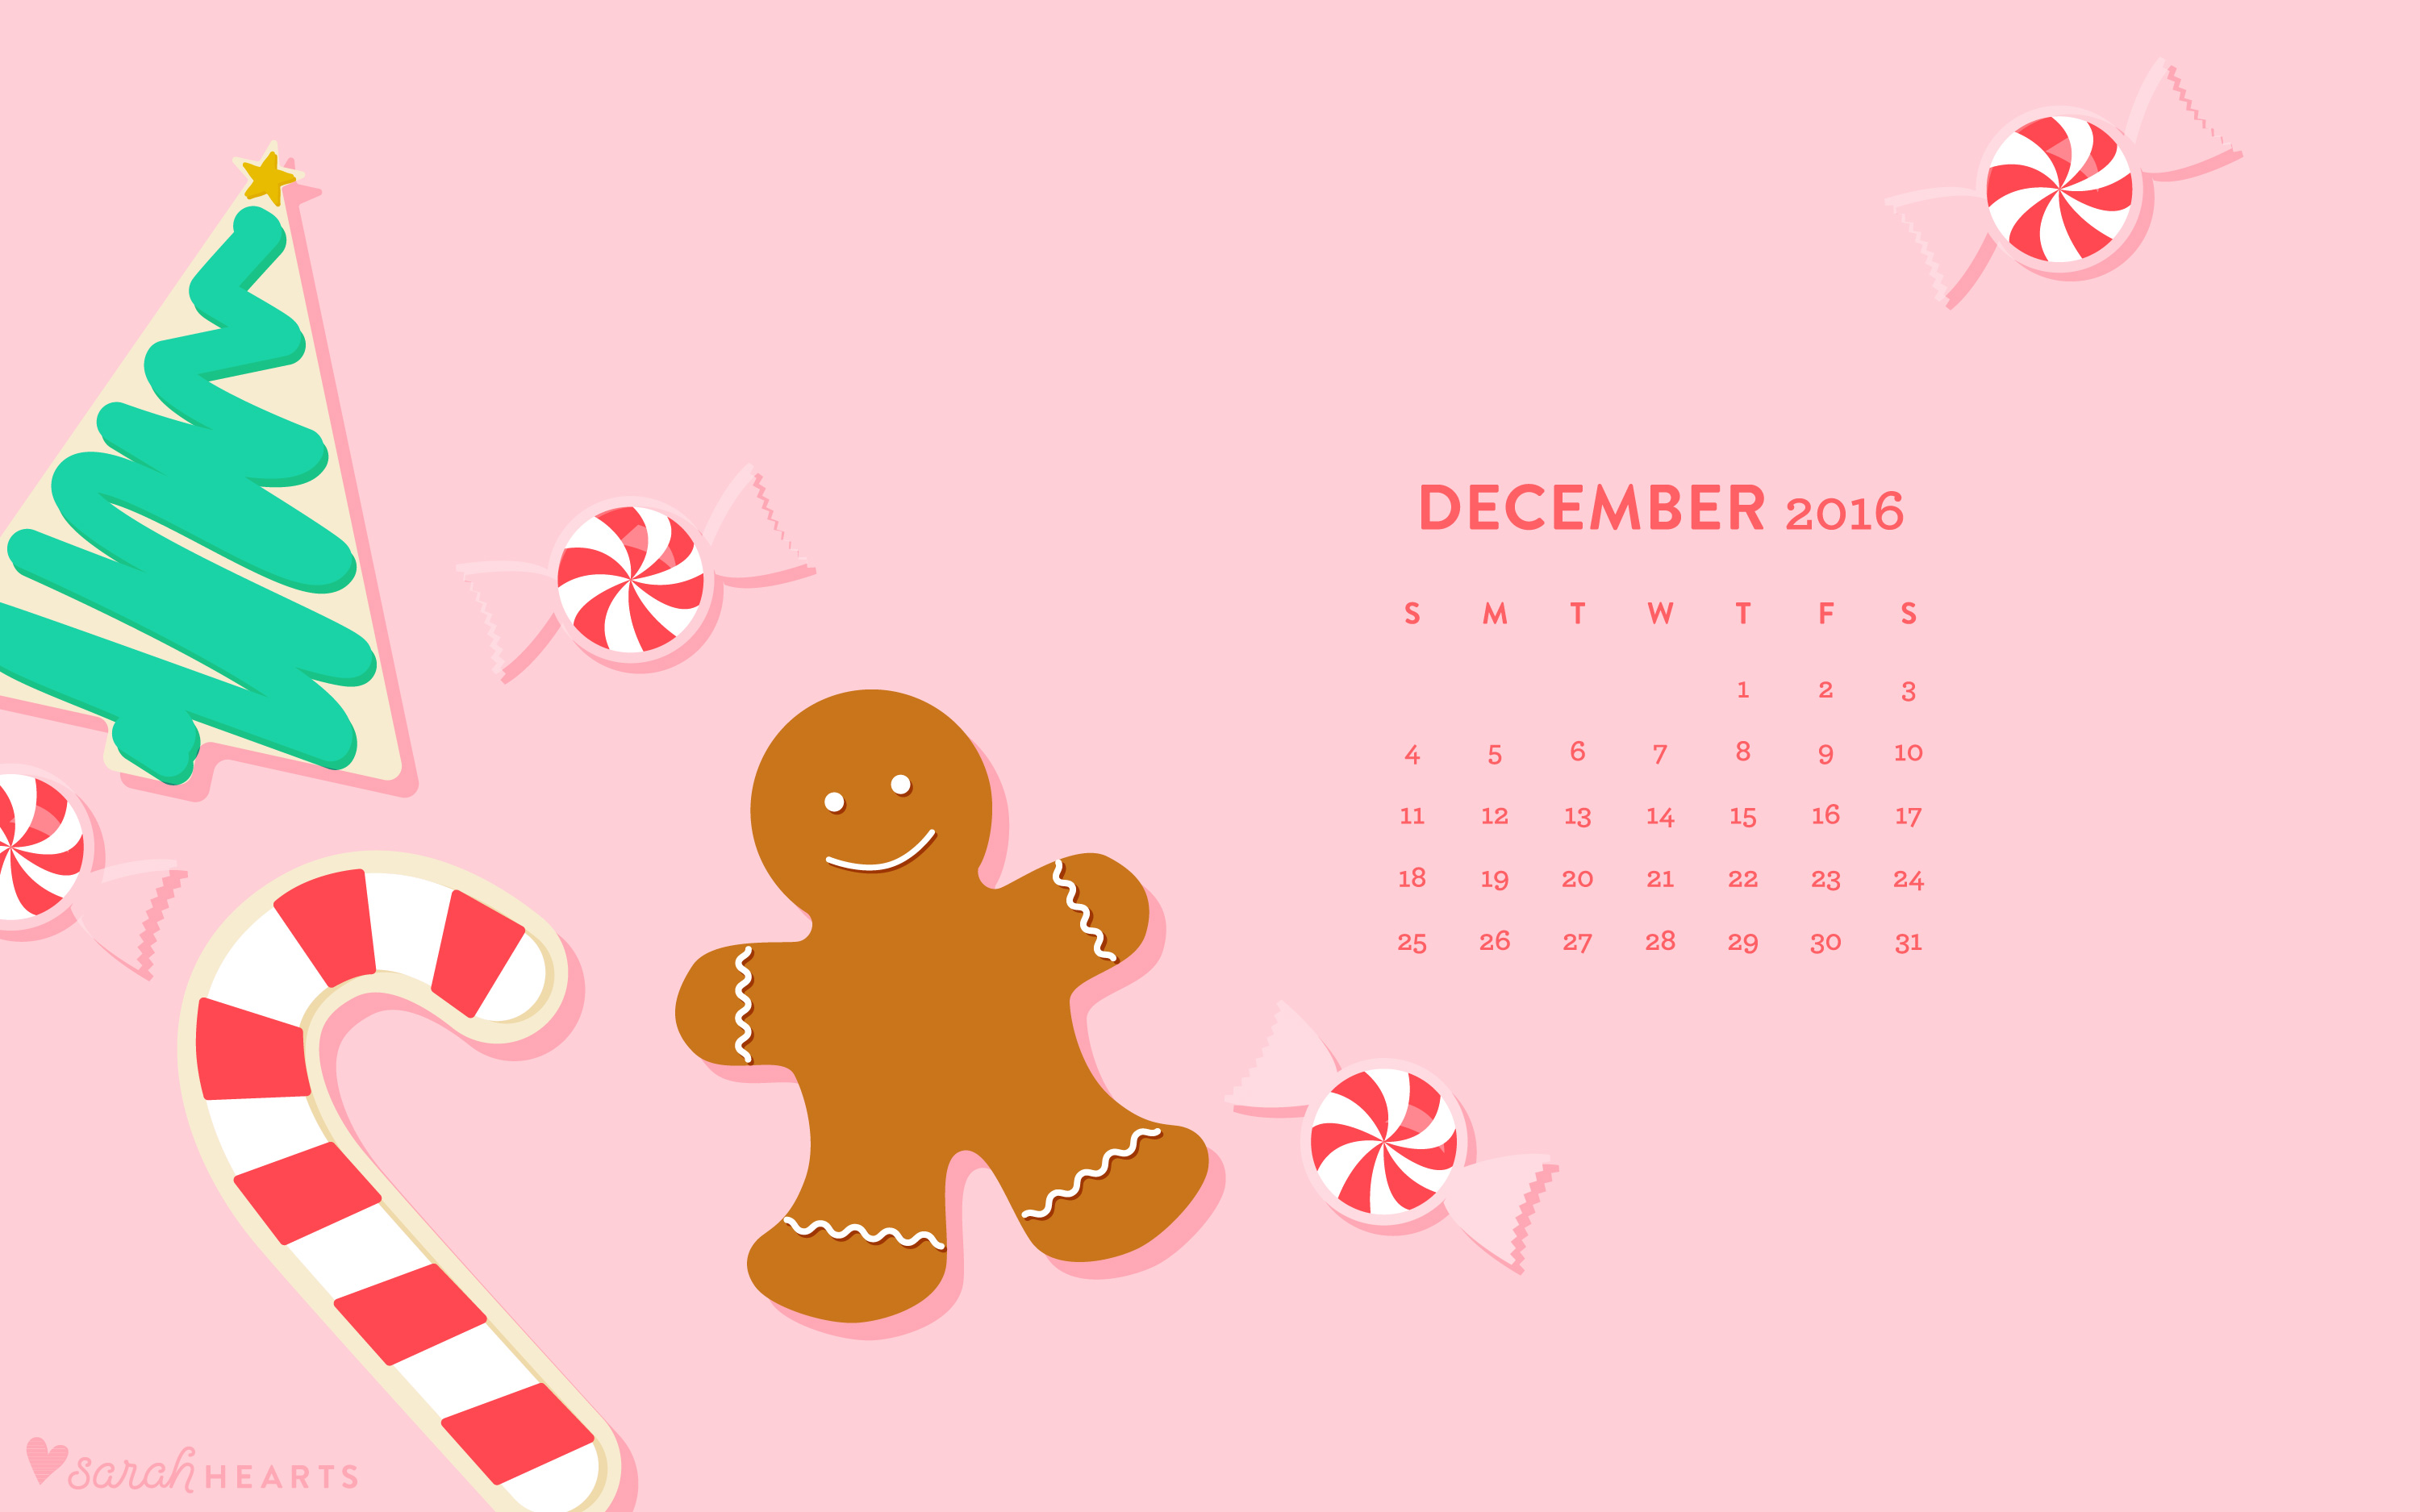 Kate Spade Iphone Wallpaper December 2016 Christmas Cookie Calendar Wallpaper Sarah